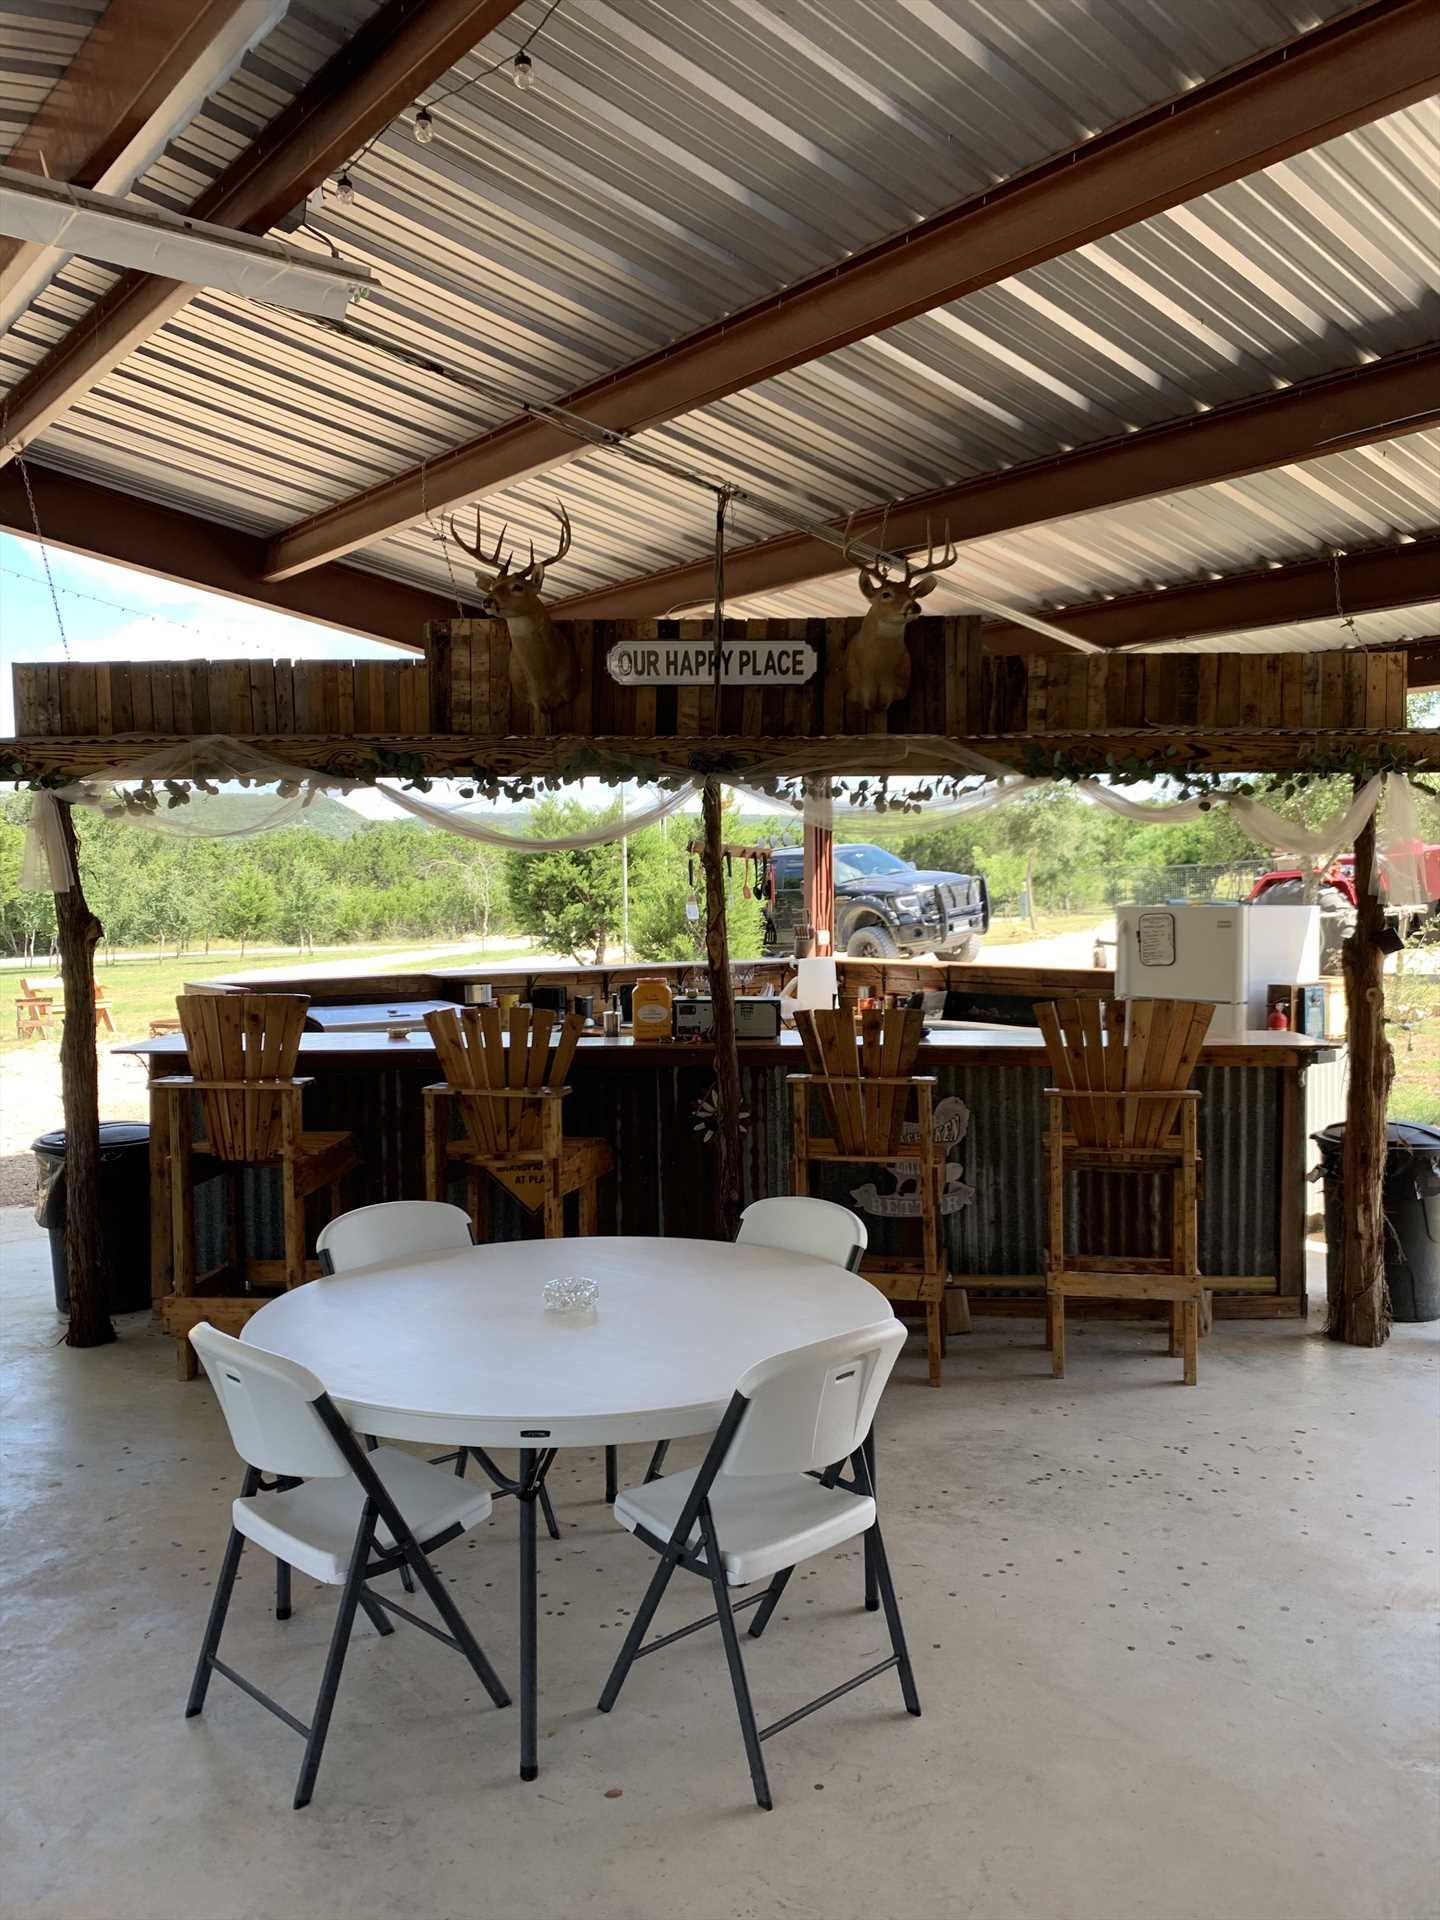 Forge new friendships in the pavilion, a shared space at Al's Hideaway where fellow travelers can meet.